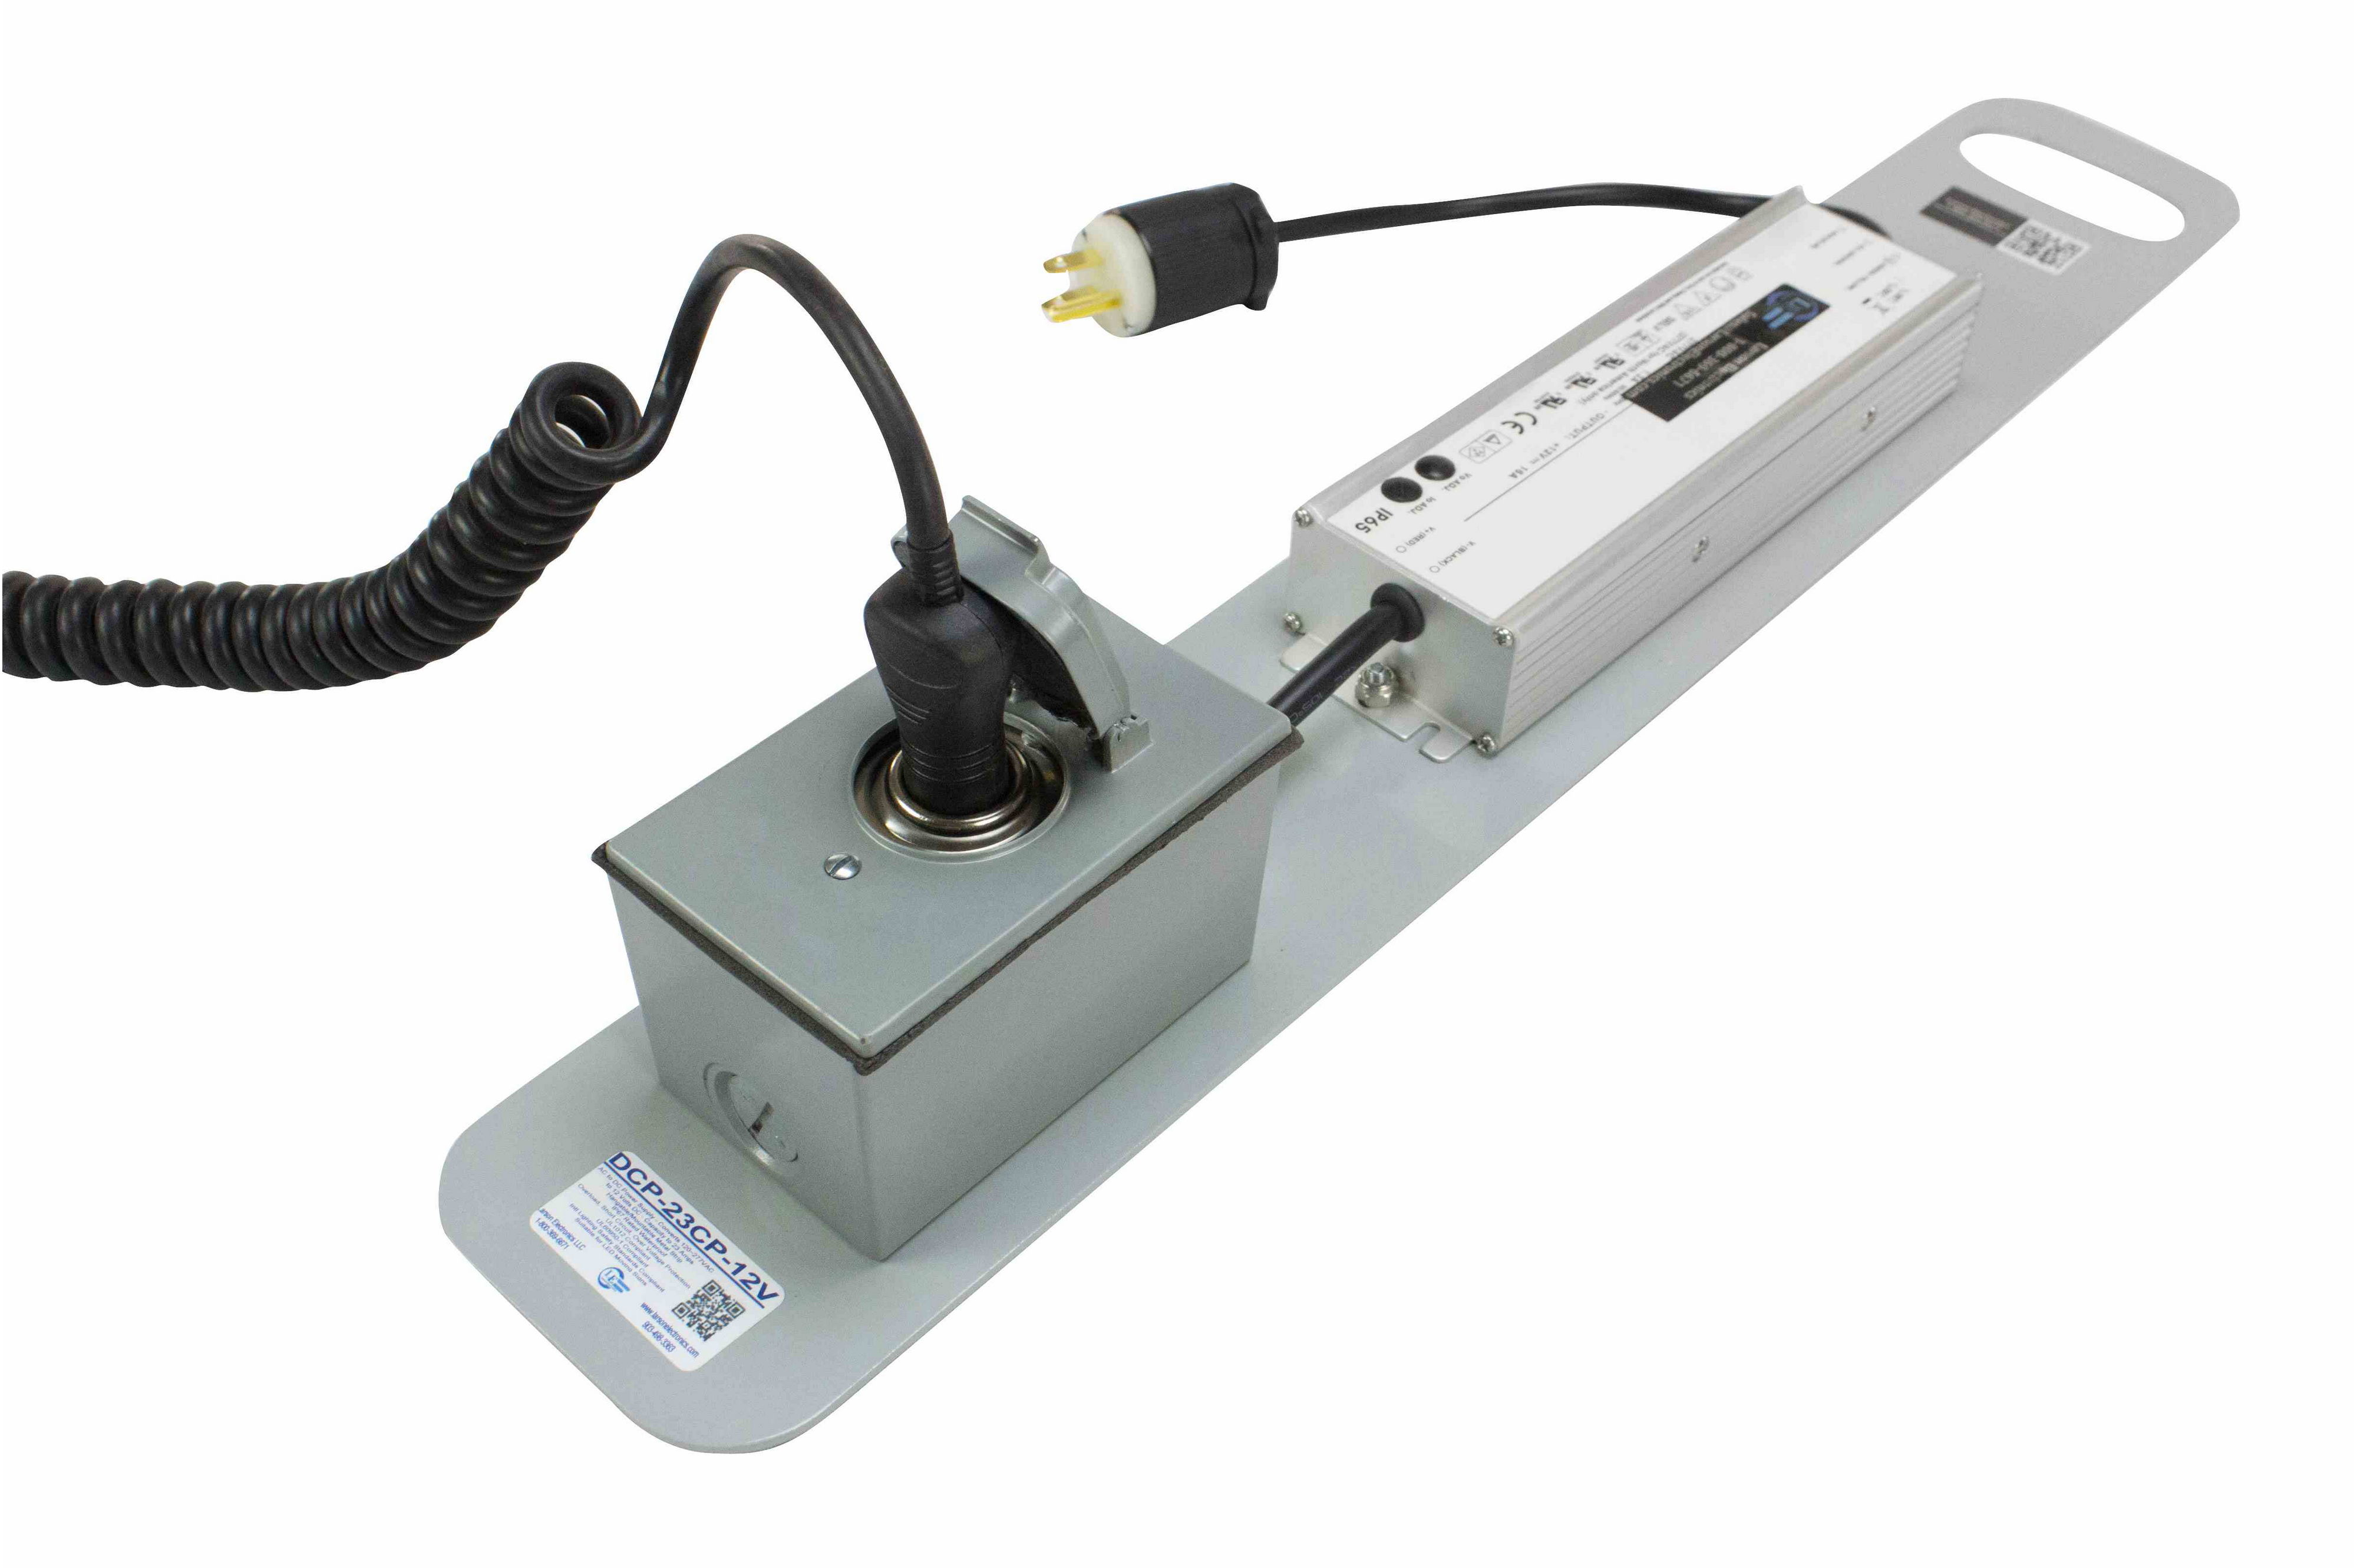 Ac To Dc Power Supply Converts 110 277v Wall Outlet 12 Volt Hi Res Image 4 Volts